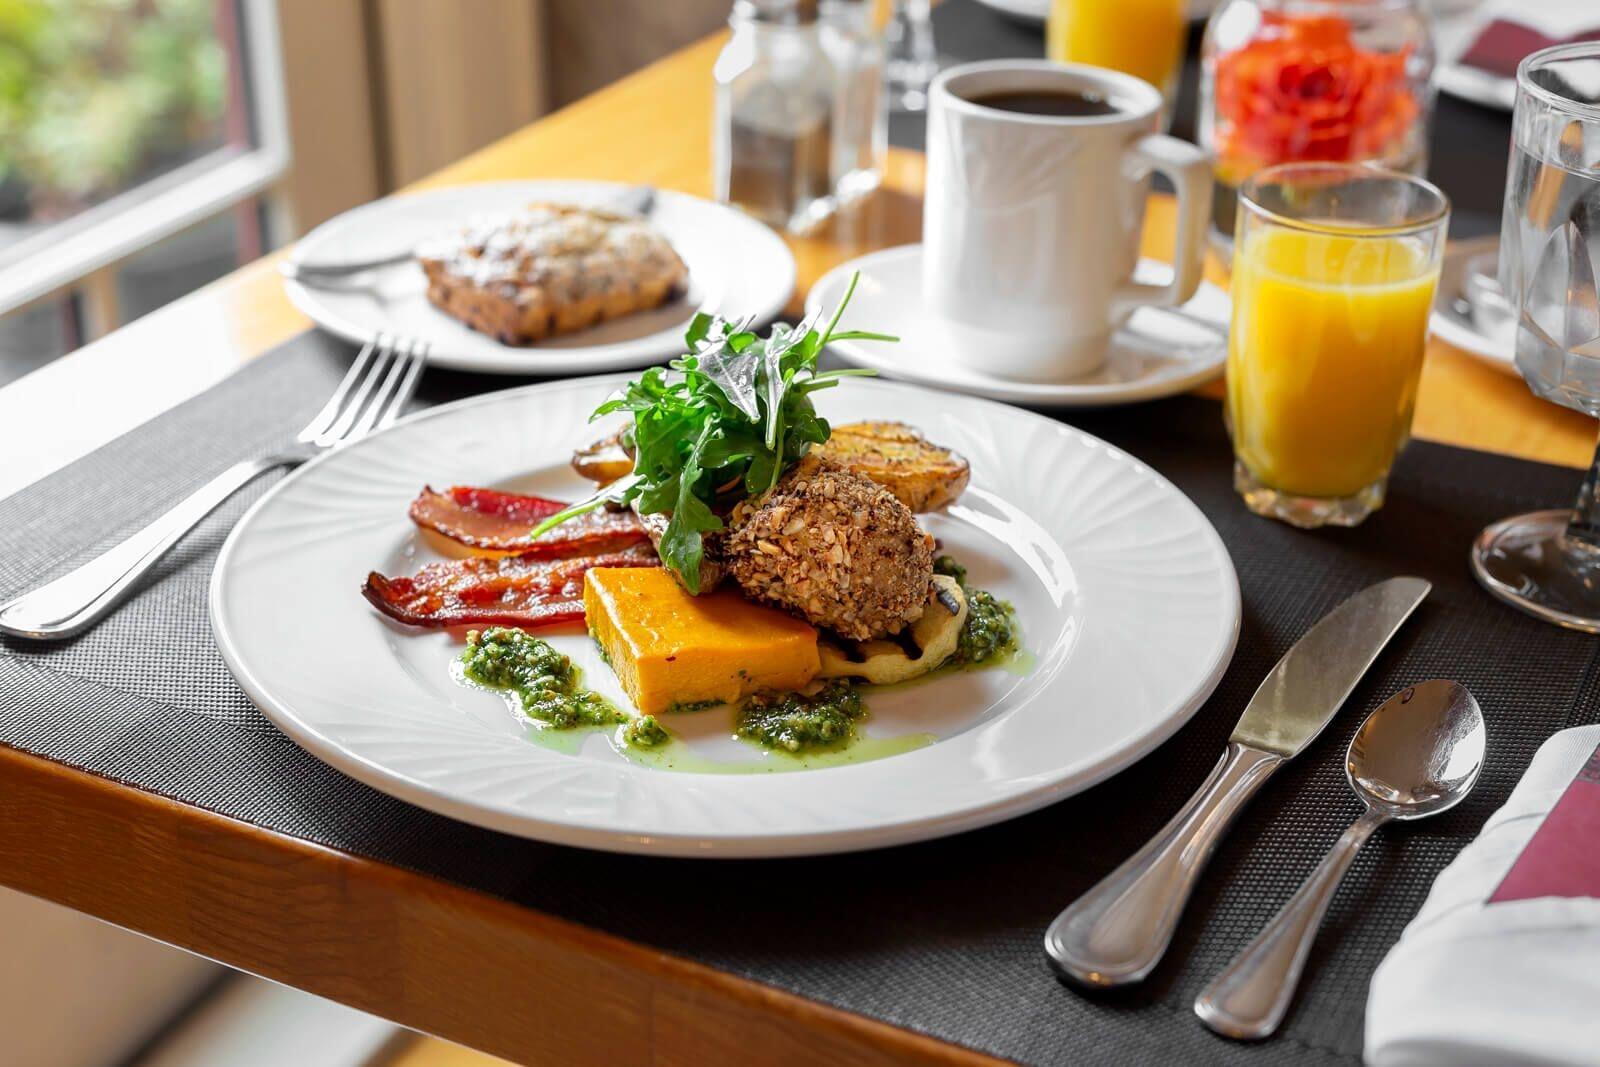 Plated breakfast served with coffee and orange juice